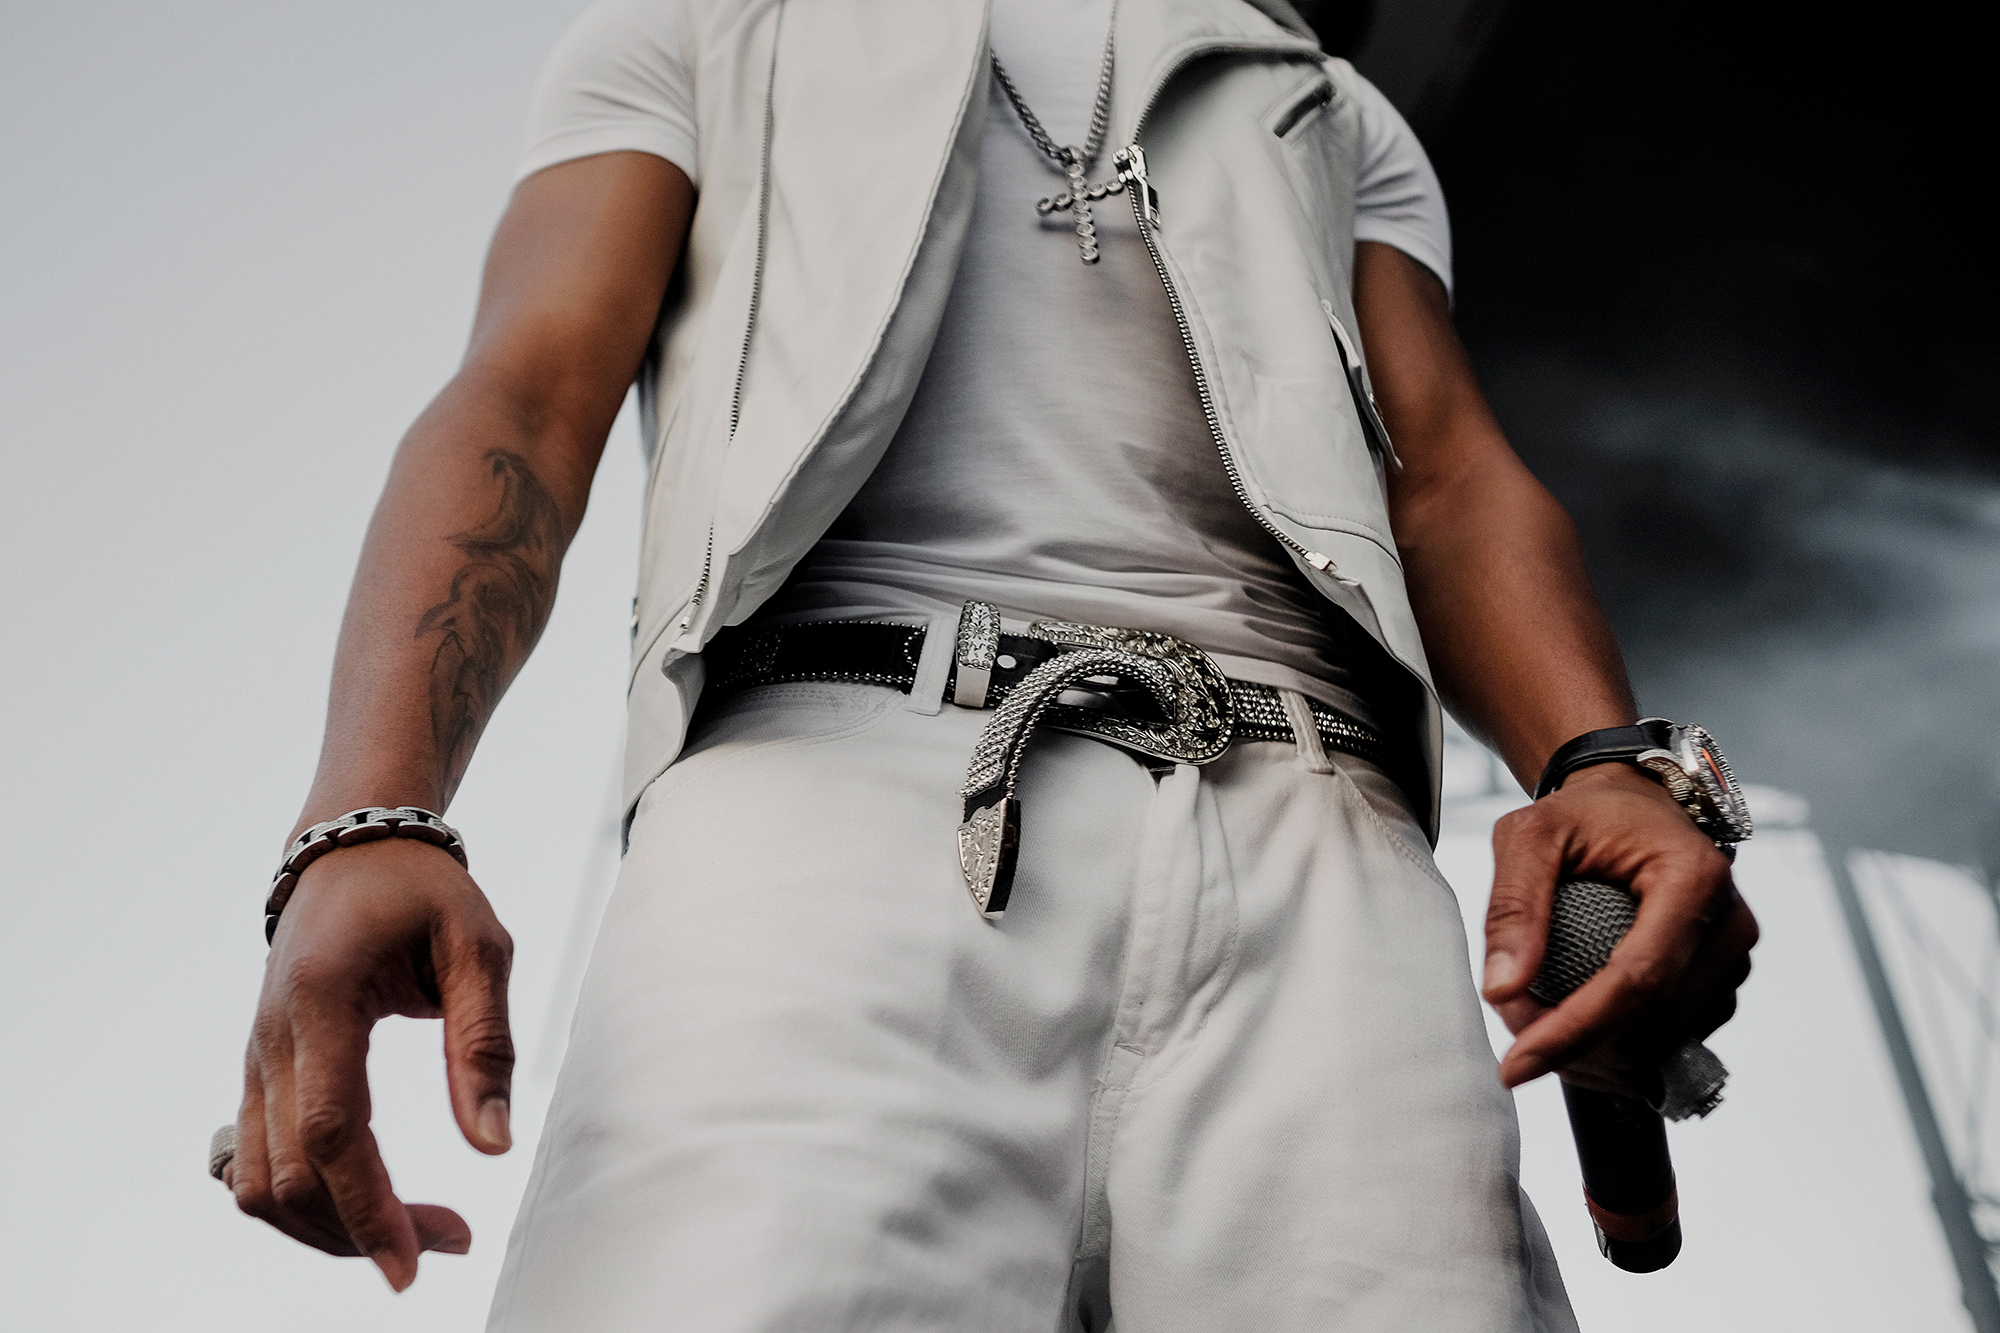 Ginuwine, r&b artist, performs at Fun Fun Fun Fest music festival in Austin, Texas, photographed by Todd Spoth.